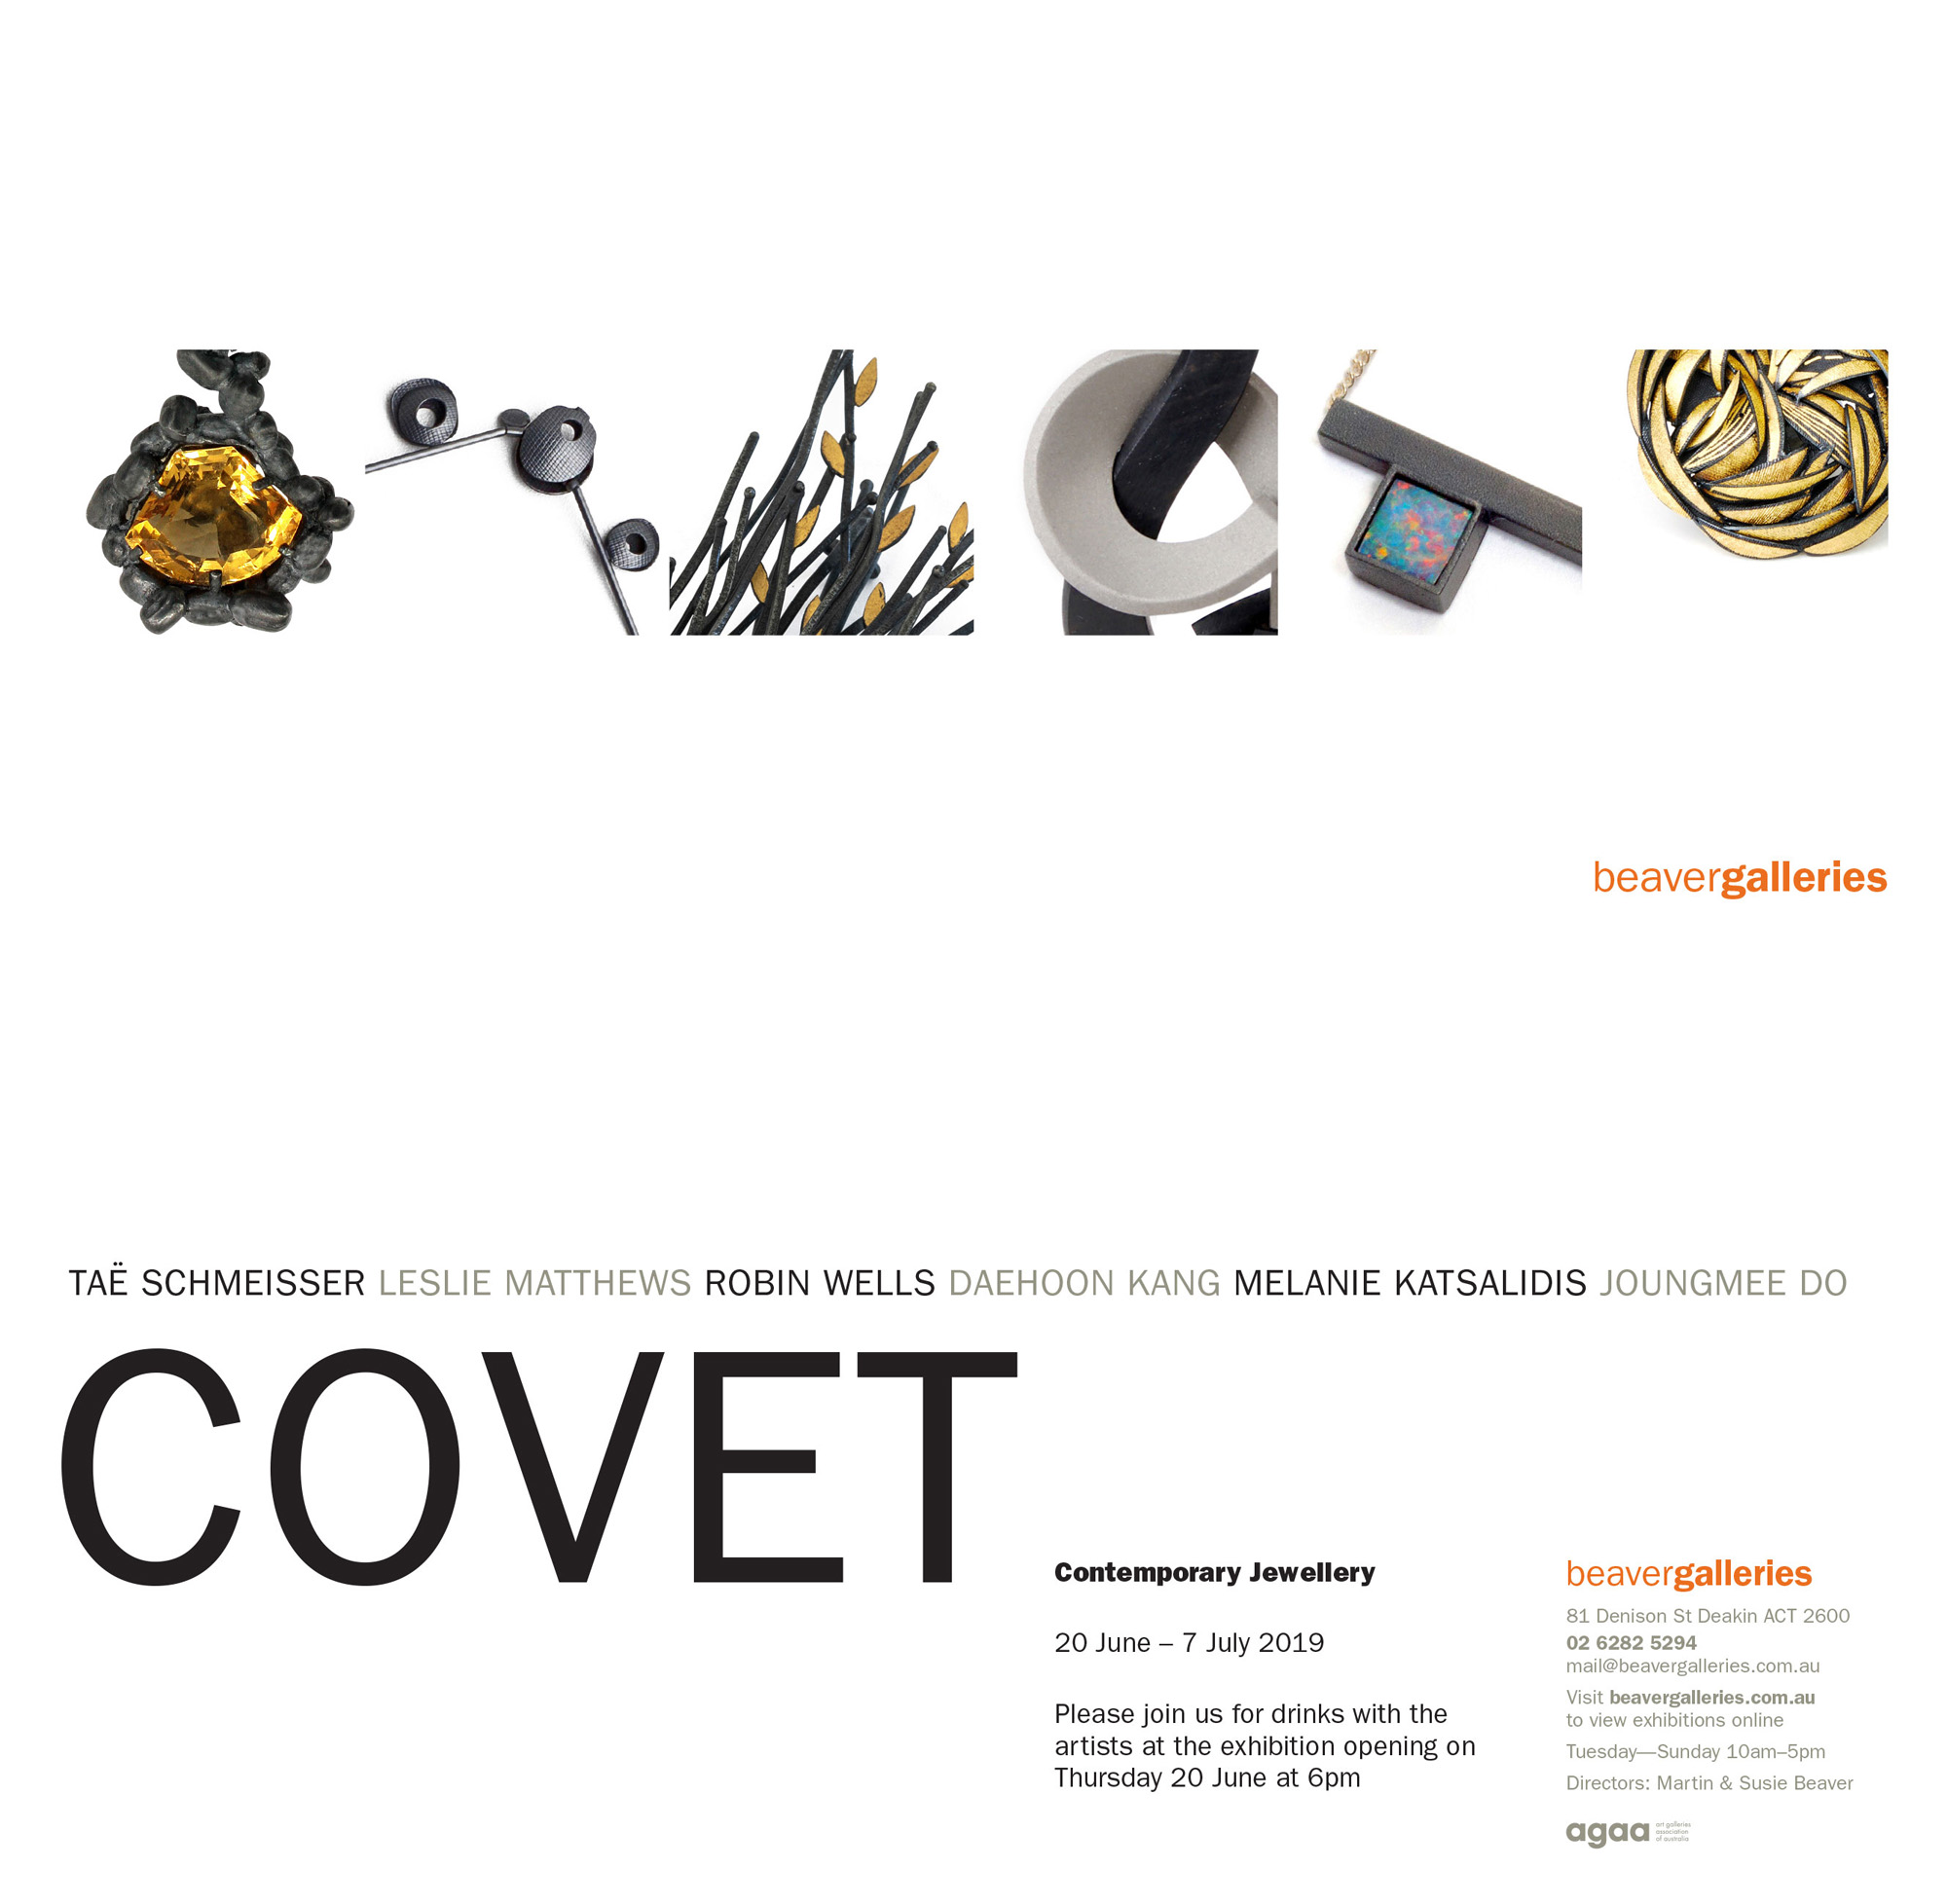 covet-beaver-galleries-email-invite-002-.jpg